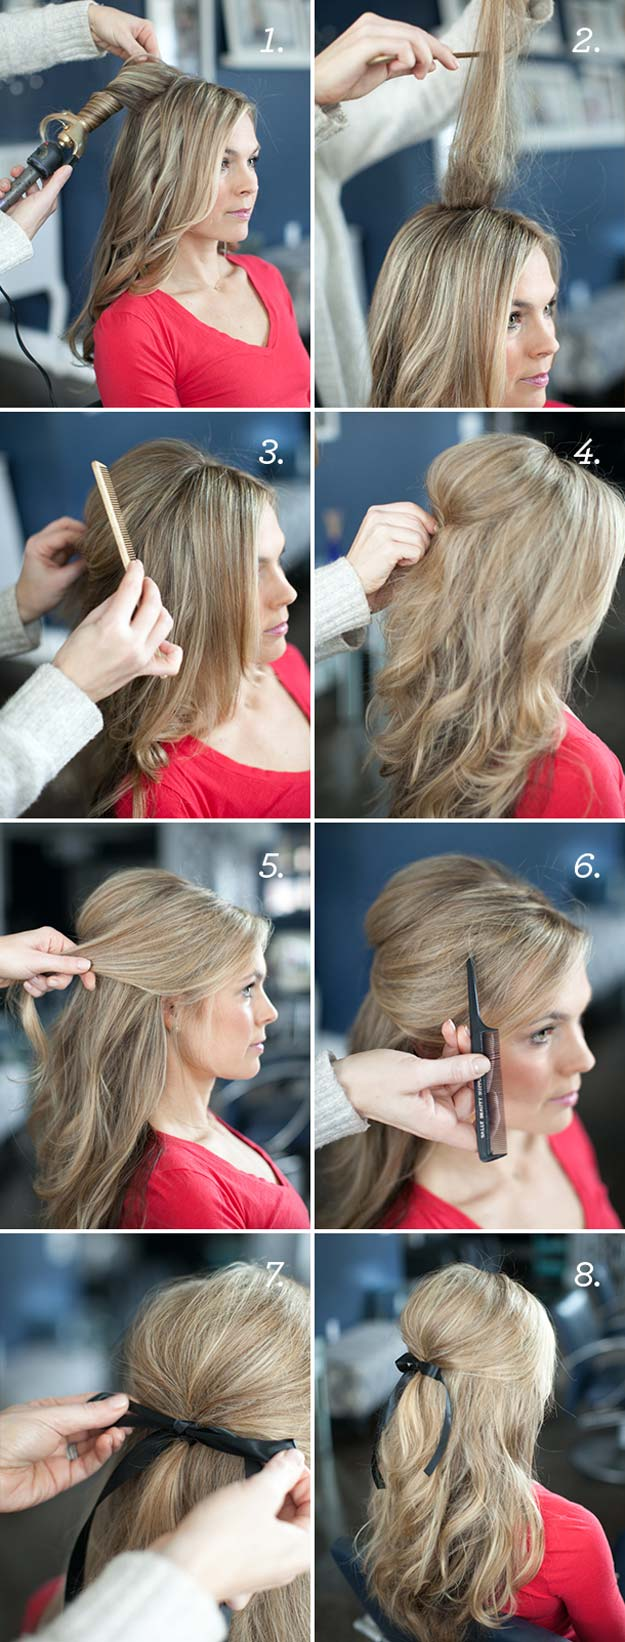 Best Hairstyles for Long Hair - Put a Bow - Step by Step Tutorials for Easy Curls, Updo, Half Up, Braids and Lazy Girl Looks. Prom Ideas, Special Occasion Hair and Braiding Instructions for Teens, Teenagers and Adults, Women and Girls http://diyprojectsforteens.com/best-hairstyles-long-hair